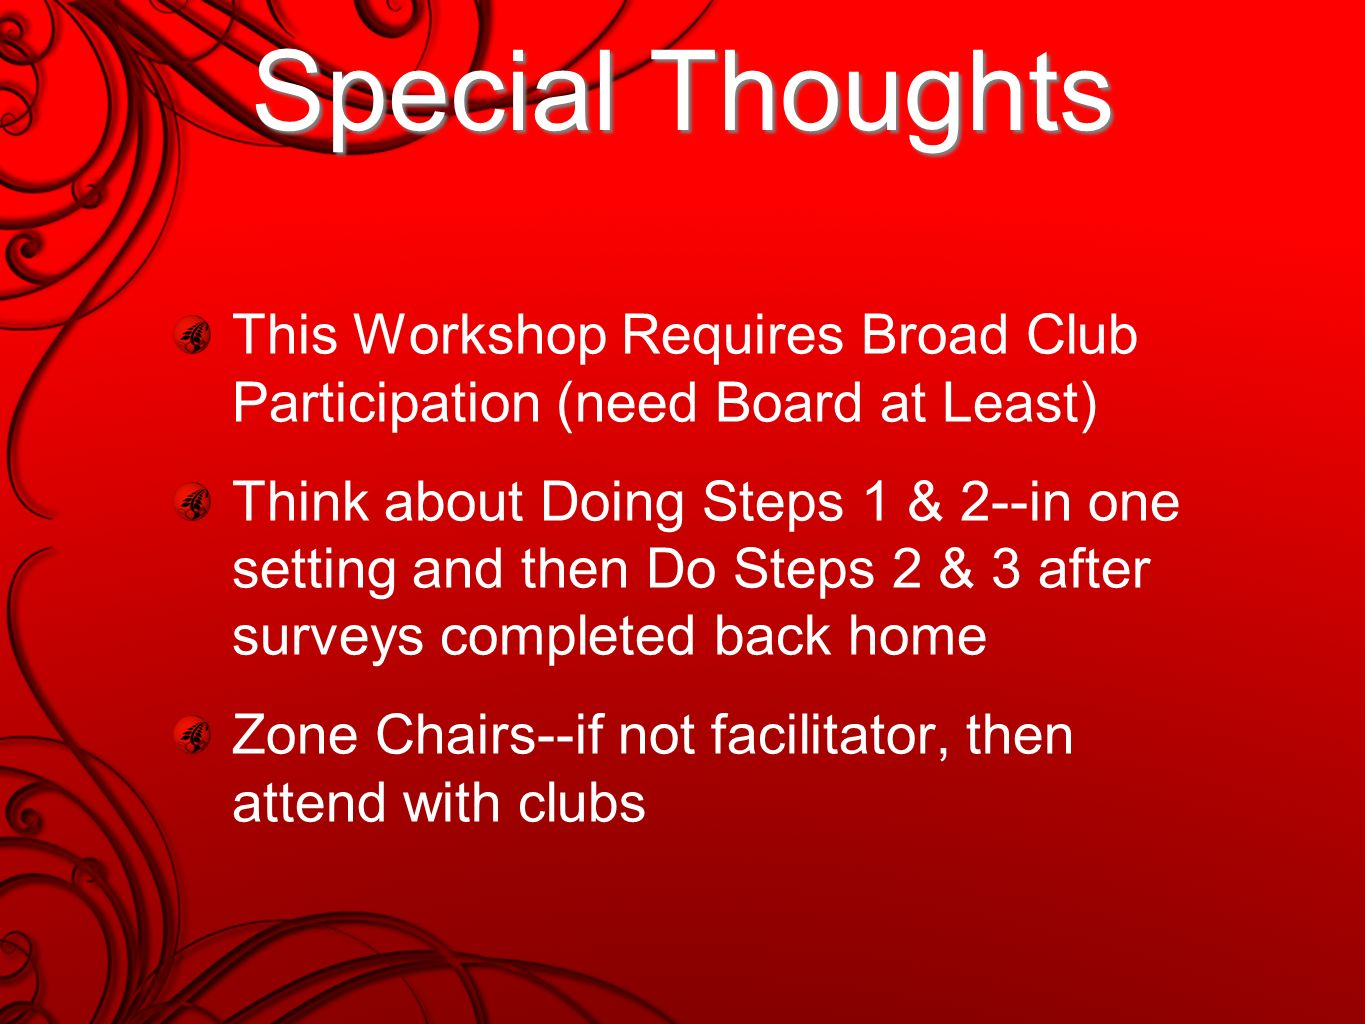 Special Thoughts This Workshop Requires Broad Club Participation (need Board at Least) Think about Doing Steps 1 & 2--in one setting and then Do Steps 2 & 3 after surveys completed back home Zone Chairs--if not facilitator, then attend with clubs